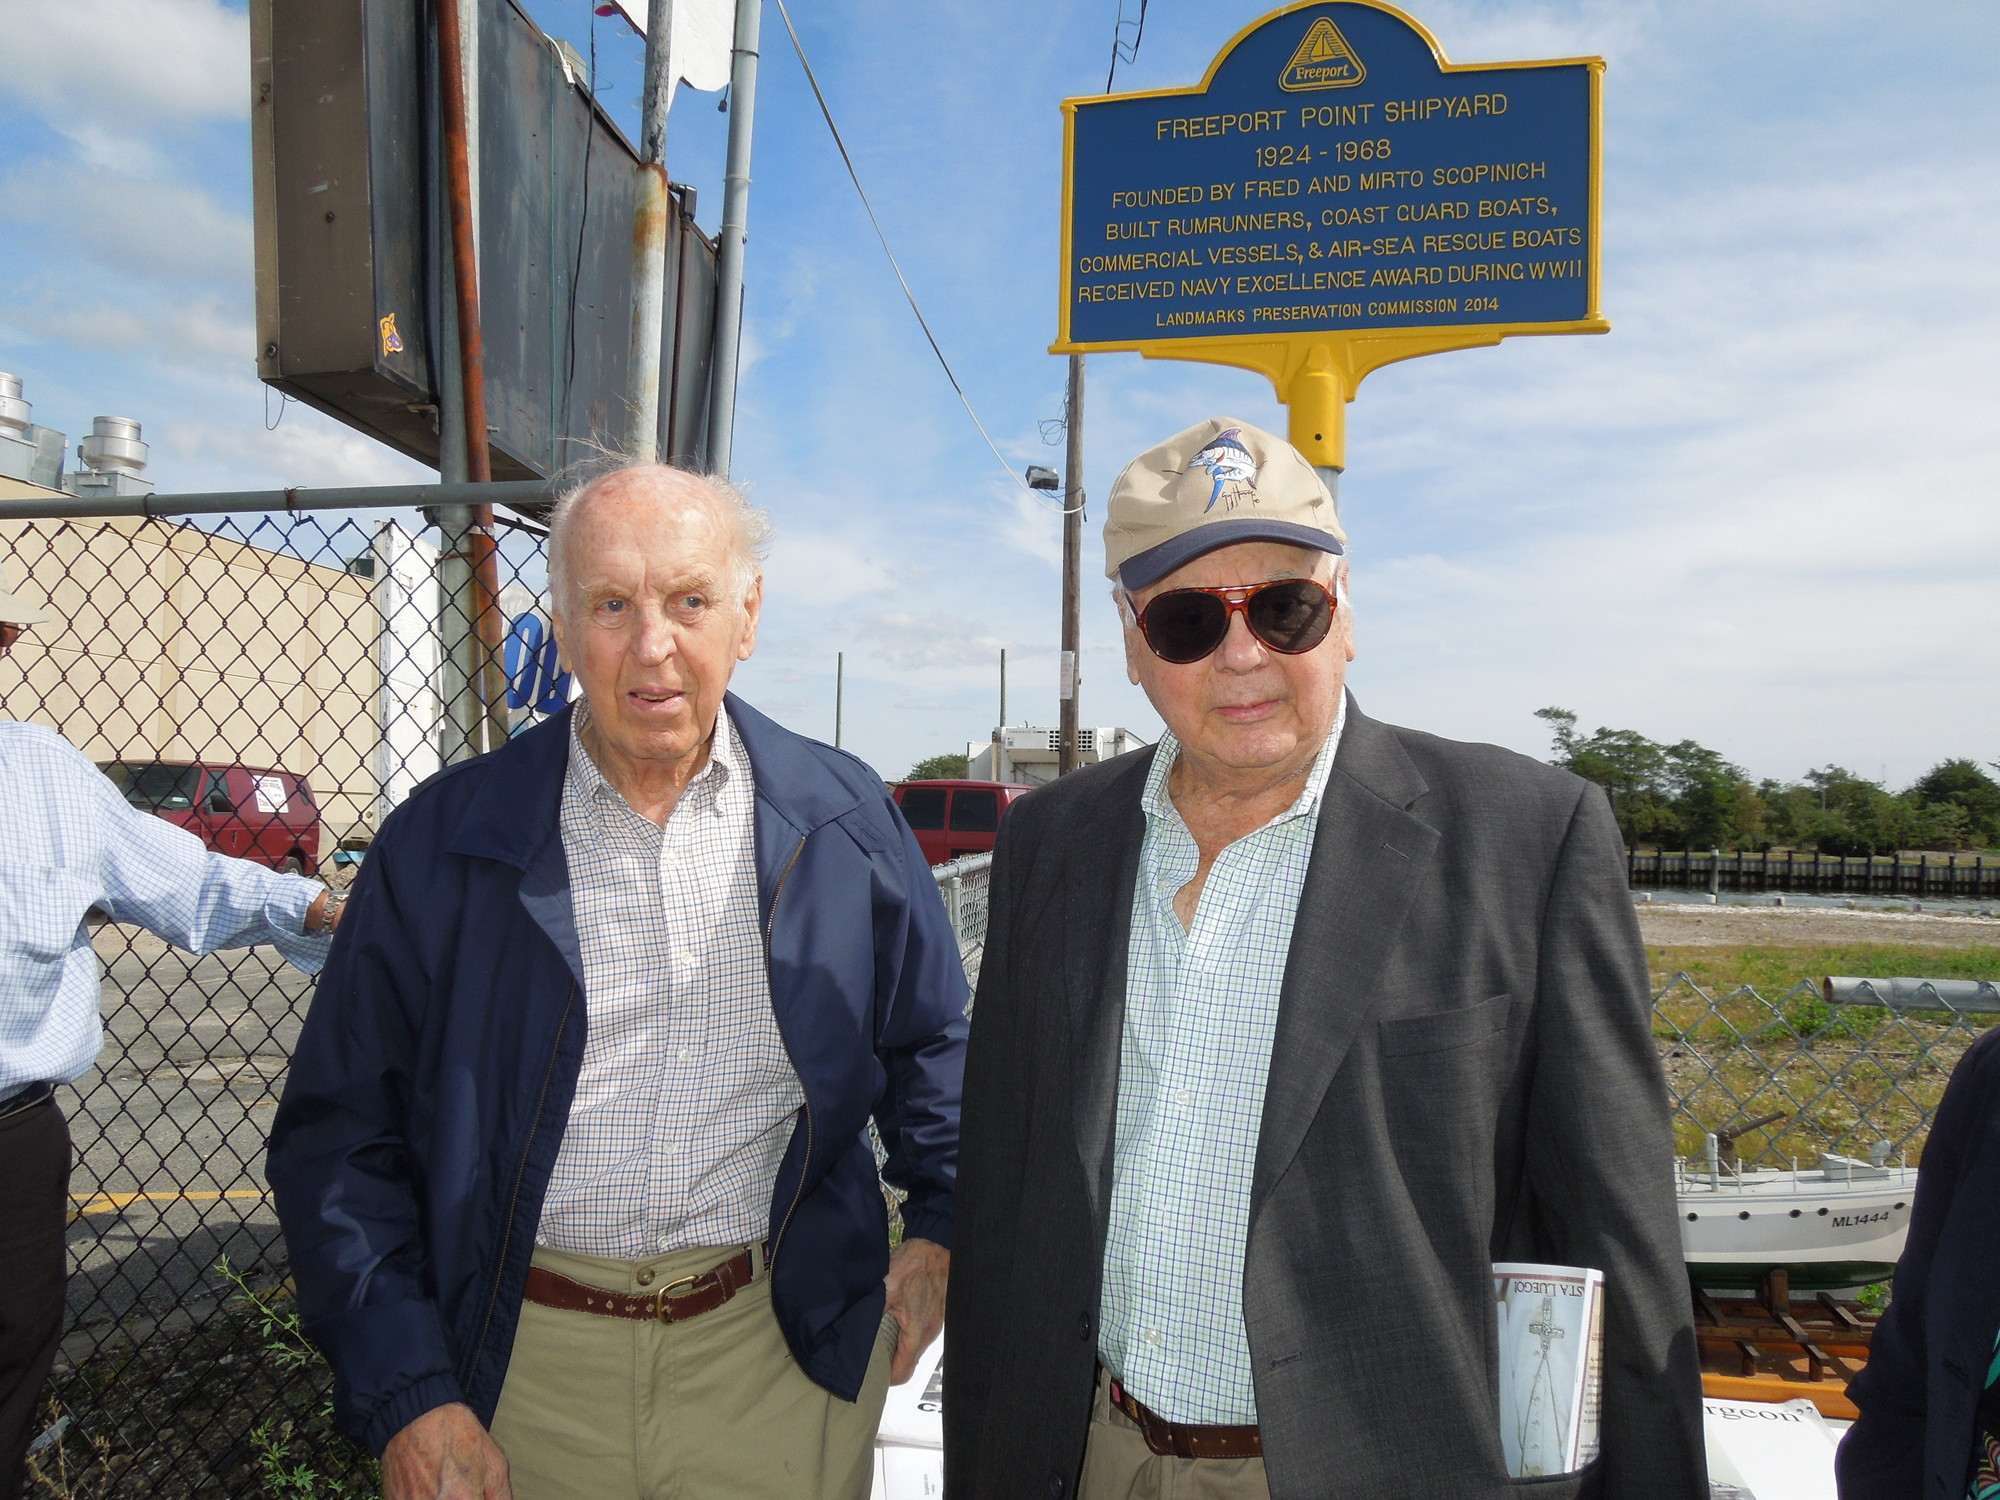 Mario and fred Scopinich unveil a marker that honors the Freeport Point Shipyard, founded by their family.